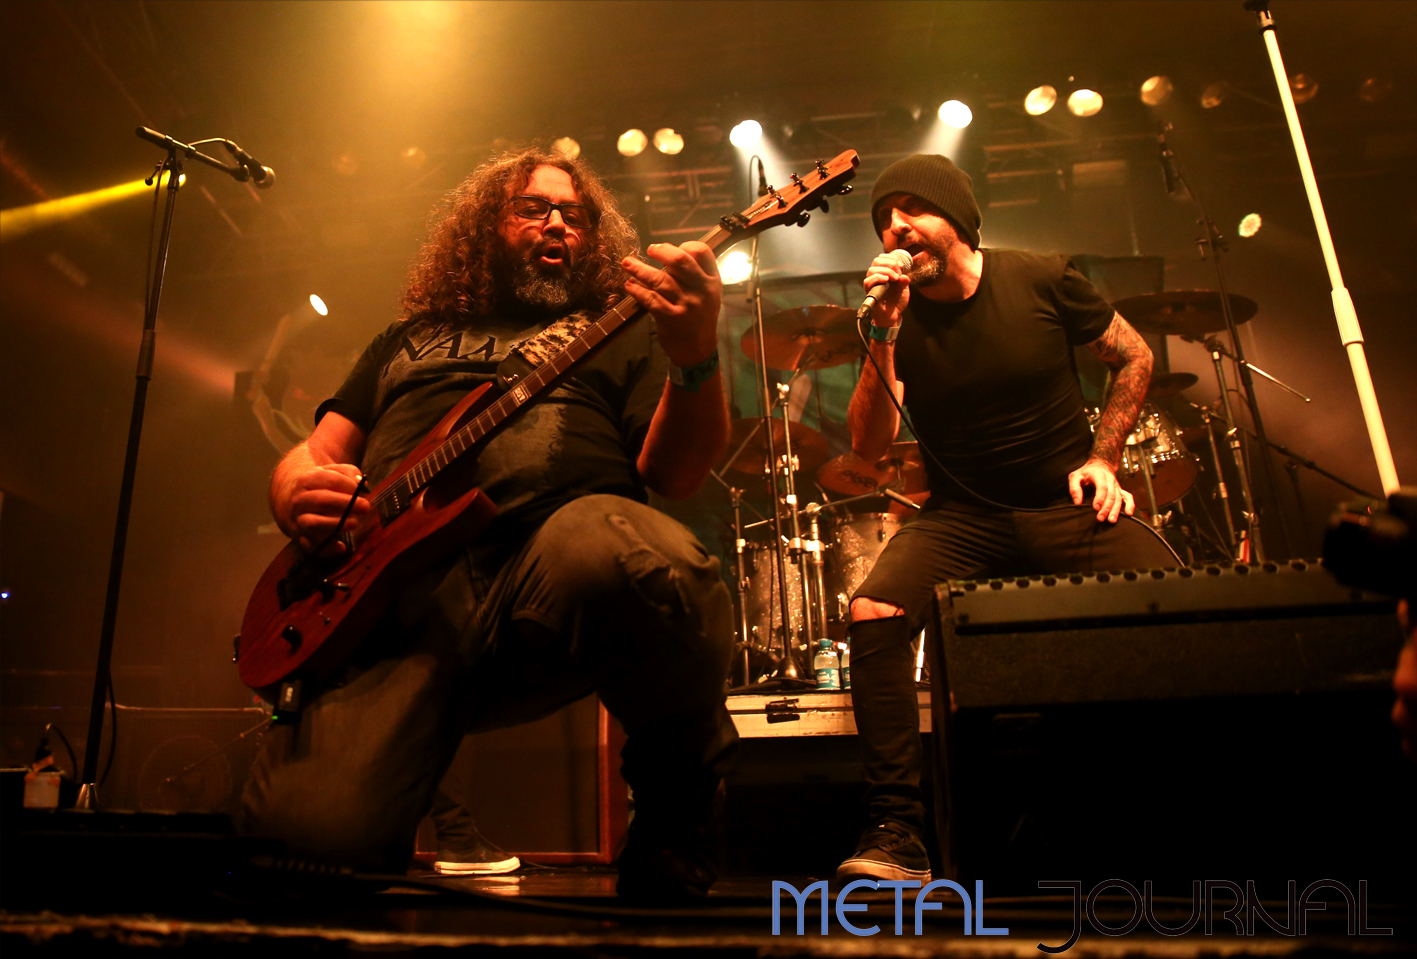 auritz 2018 bilbao metal journal pic 1